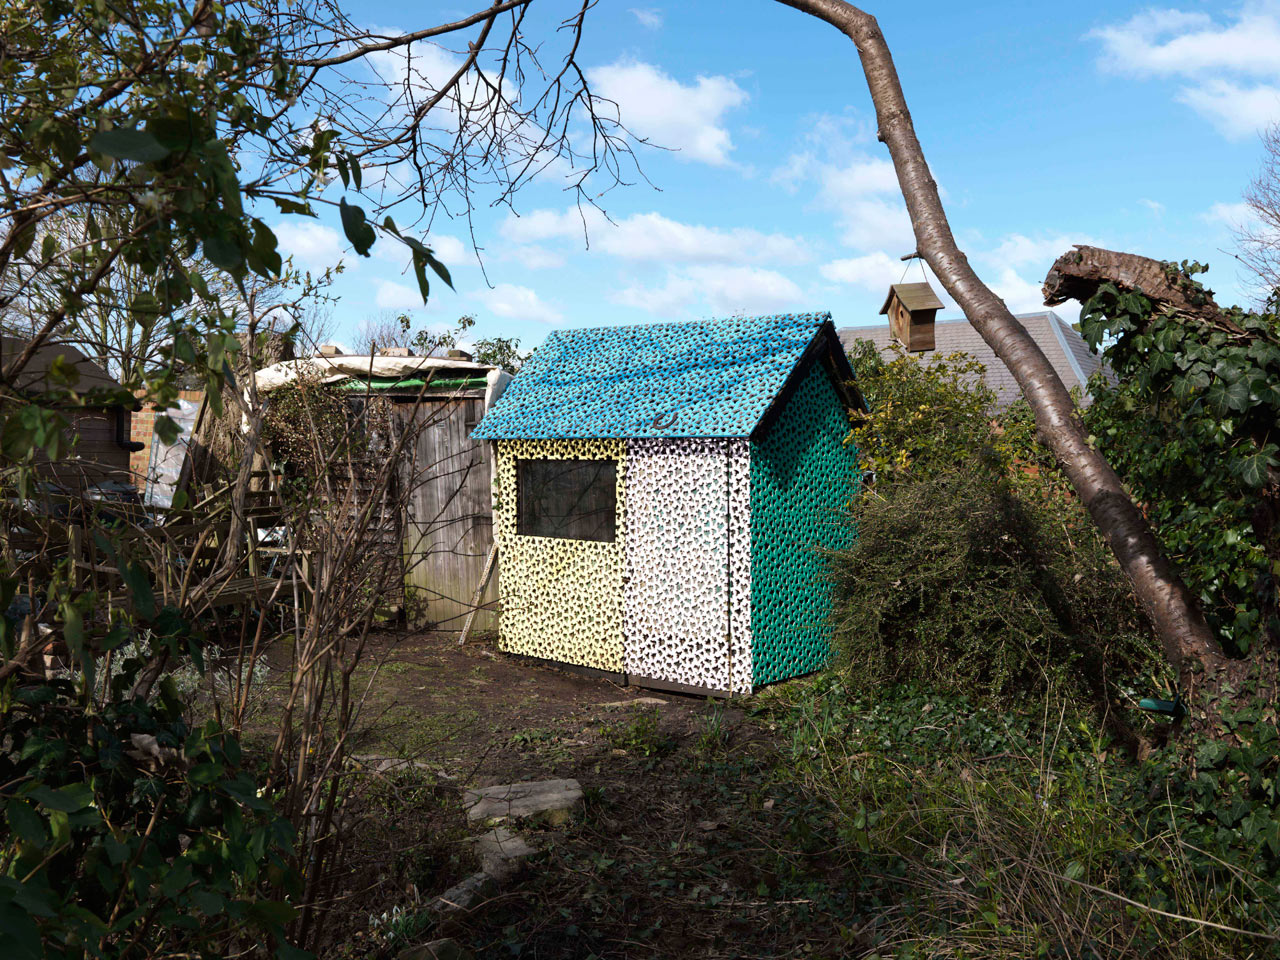 Britain's Ugliest Shed Gets Some Love From Eley Kishimoto